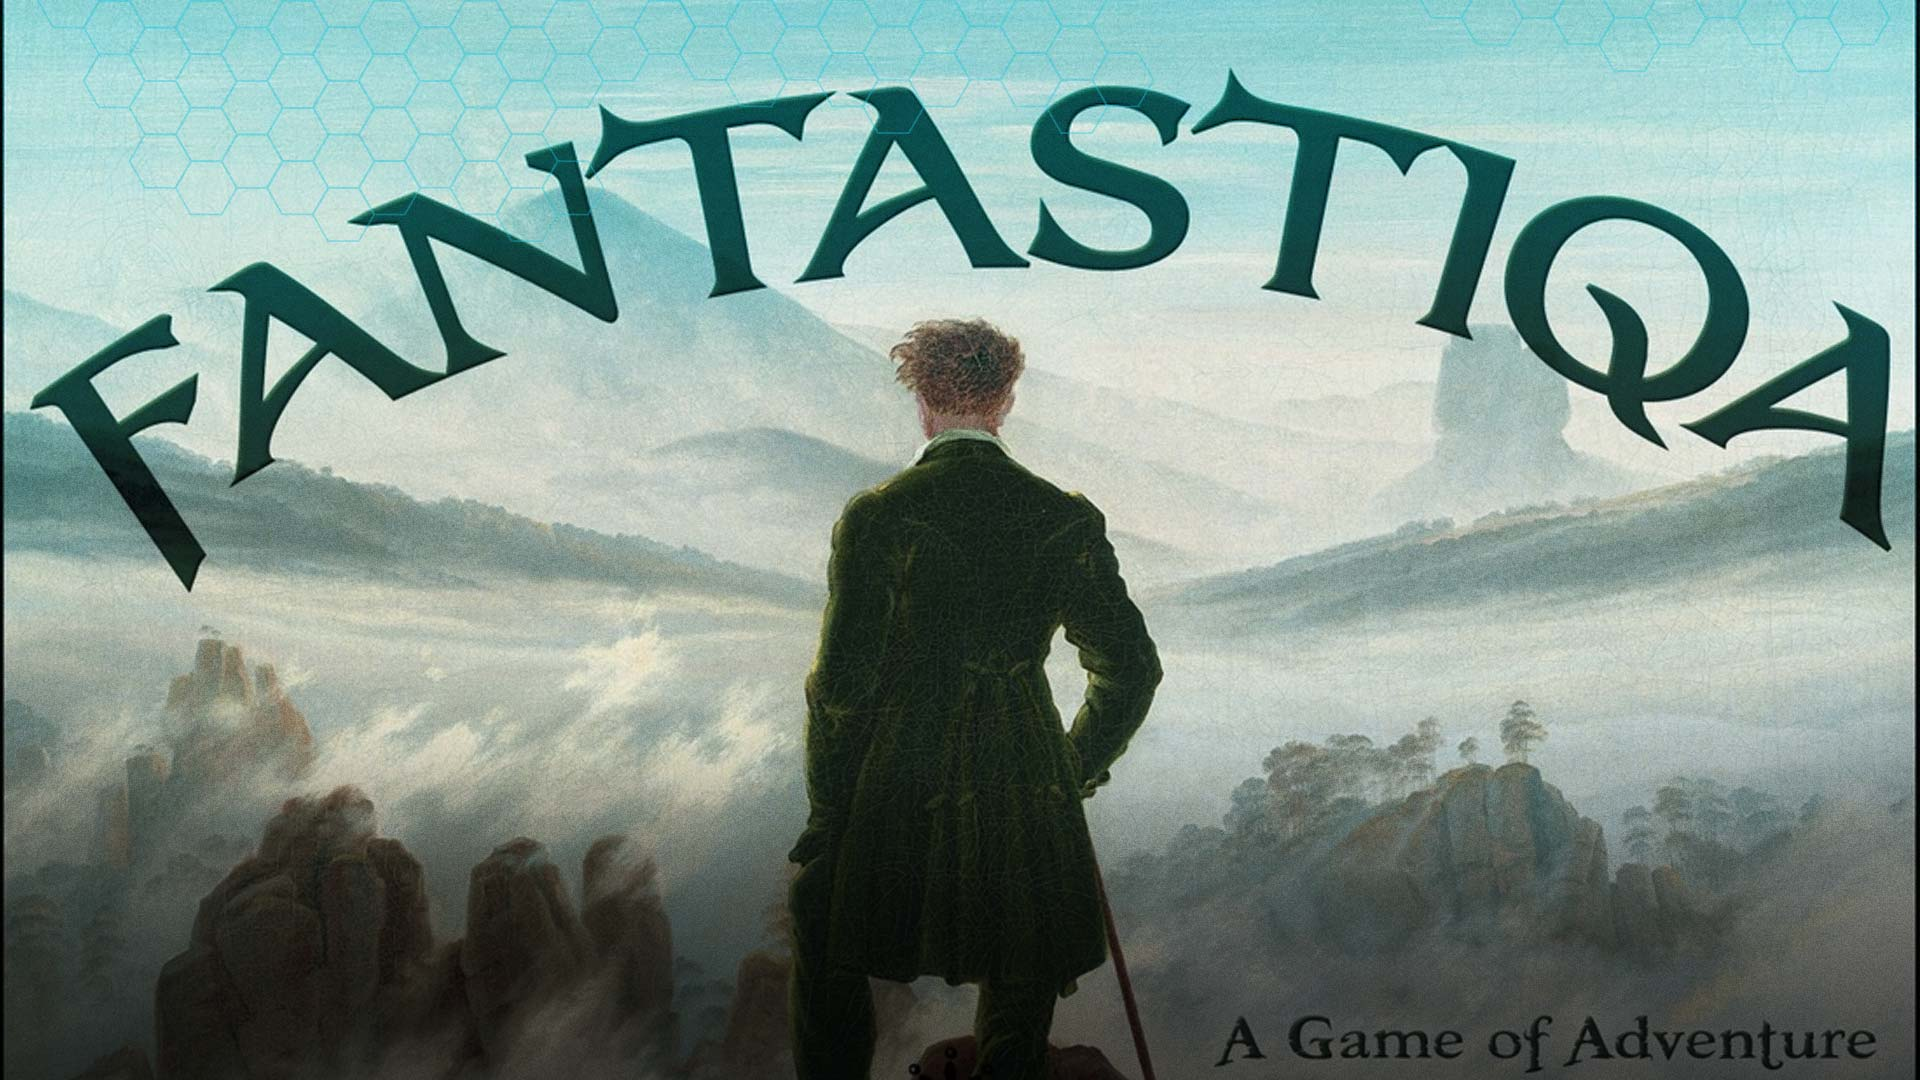 Artistry in Games fantastiqa Deck-building Goes Down the Rabbit Hole Into a Wonderful New World, and I Love It! Guests  gameboard game board Fantastiqa endersgame deck-building boardgame board game